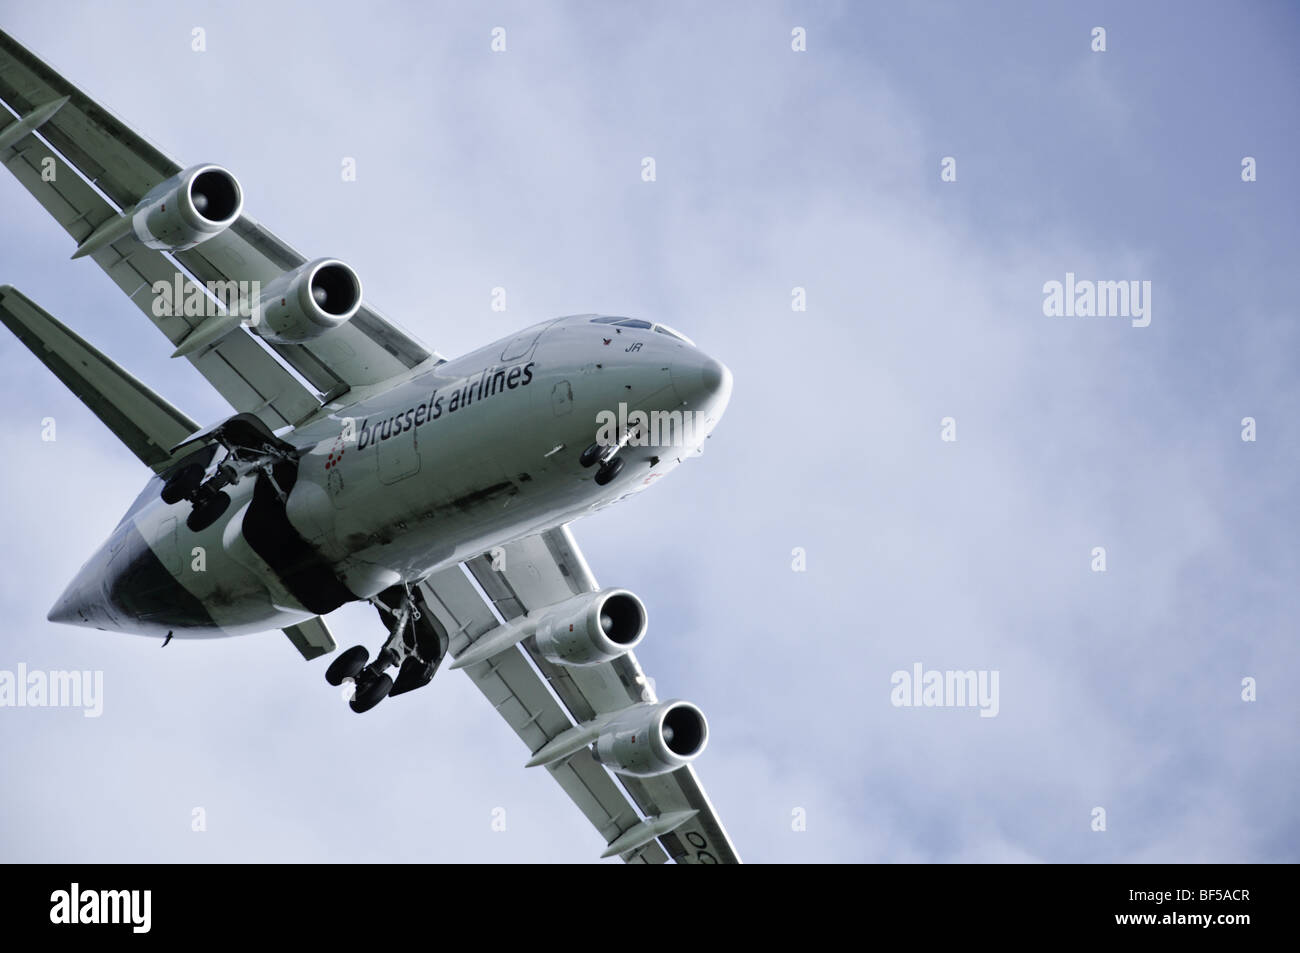 Brussels Airlines' BAe 146 coming in to land at Manchester Airport - Stock Image